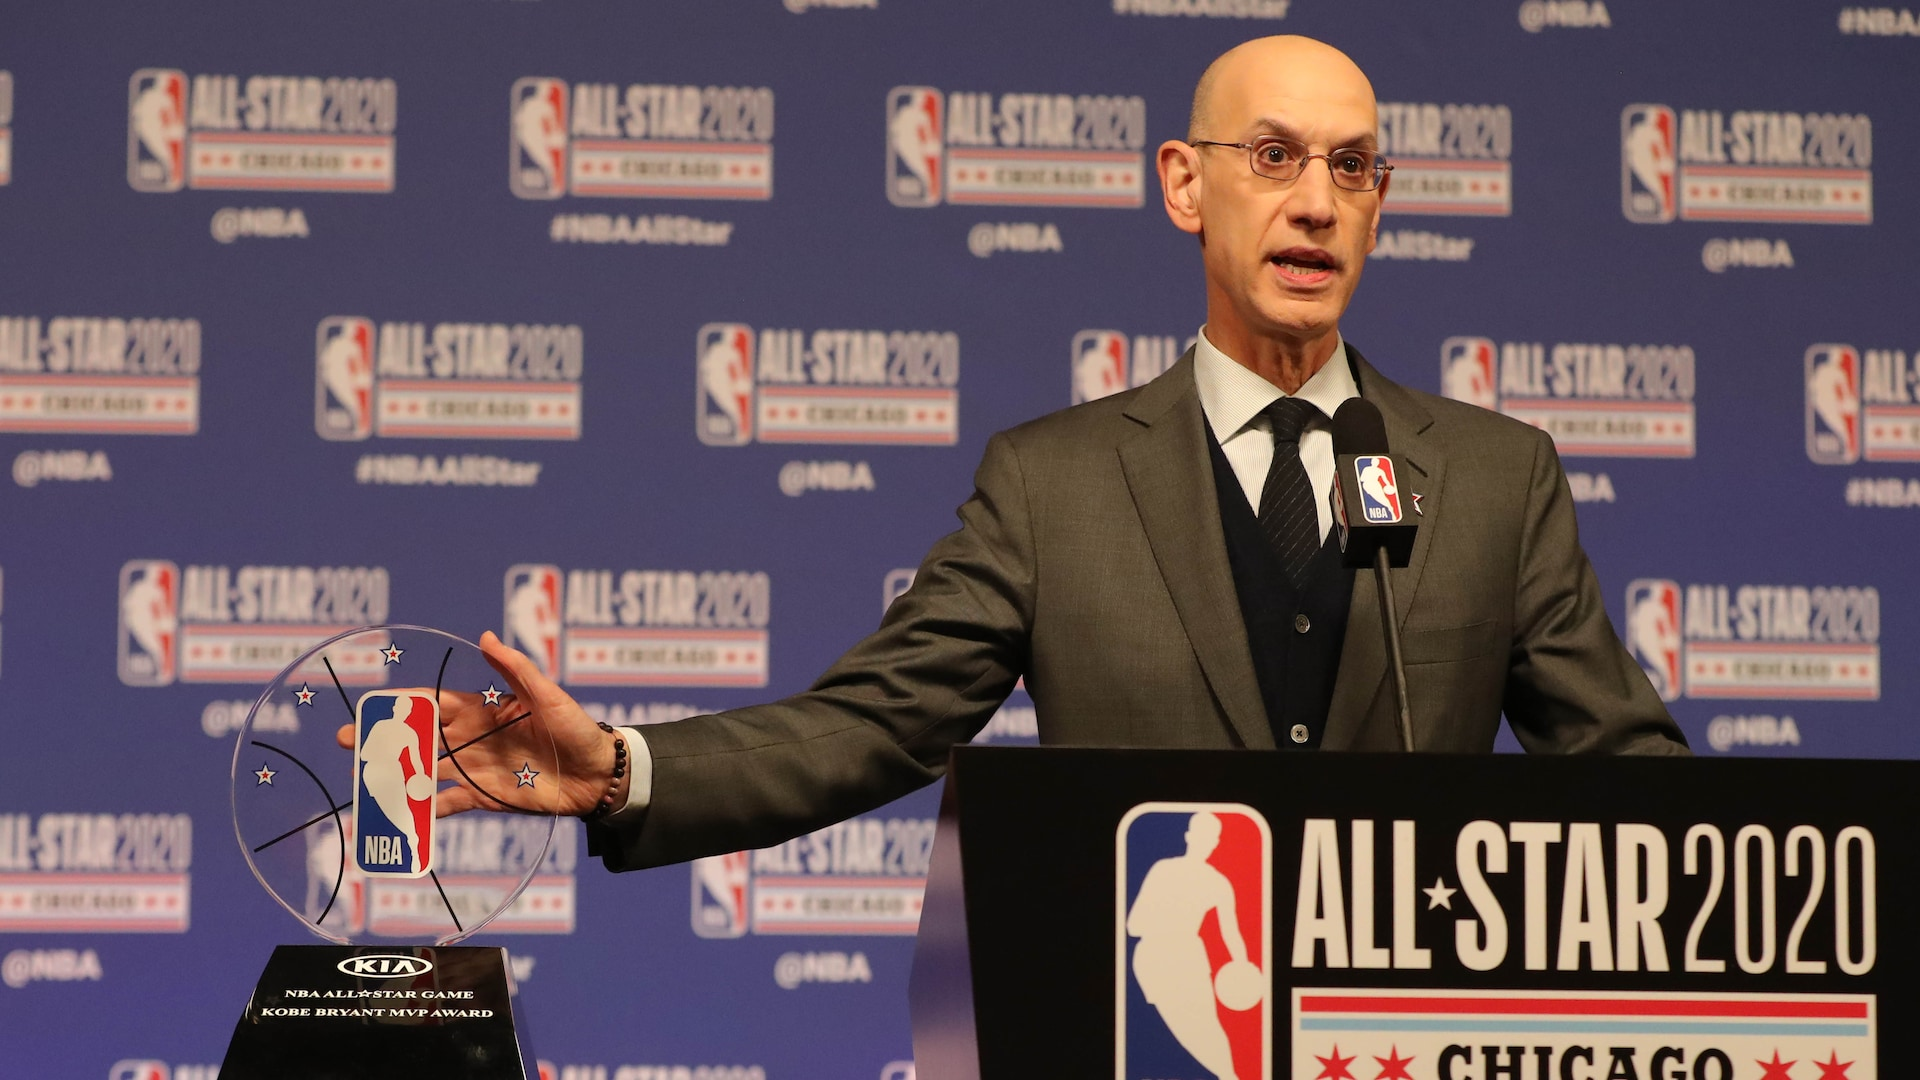 Adam Silver honors Kobe Bryant, 'force of nature' David Stern at All-Star Weekend